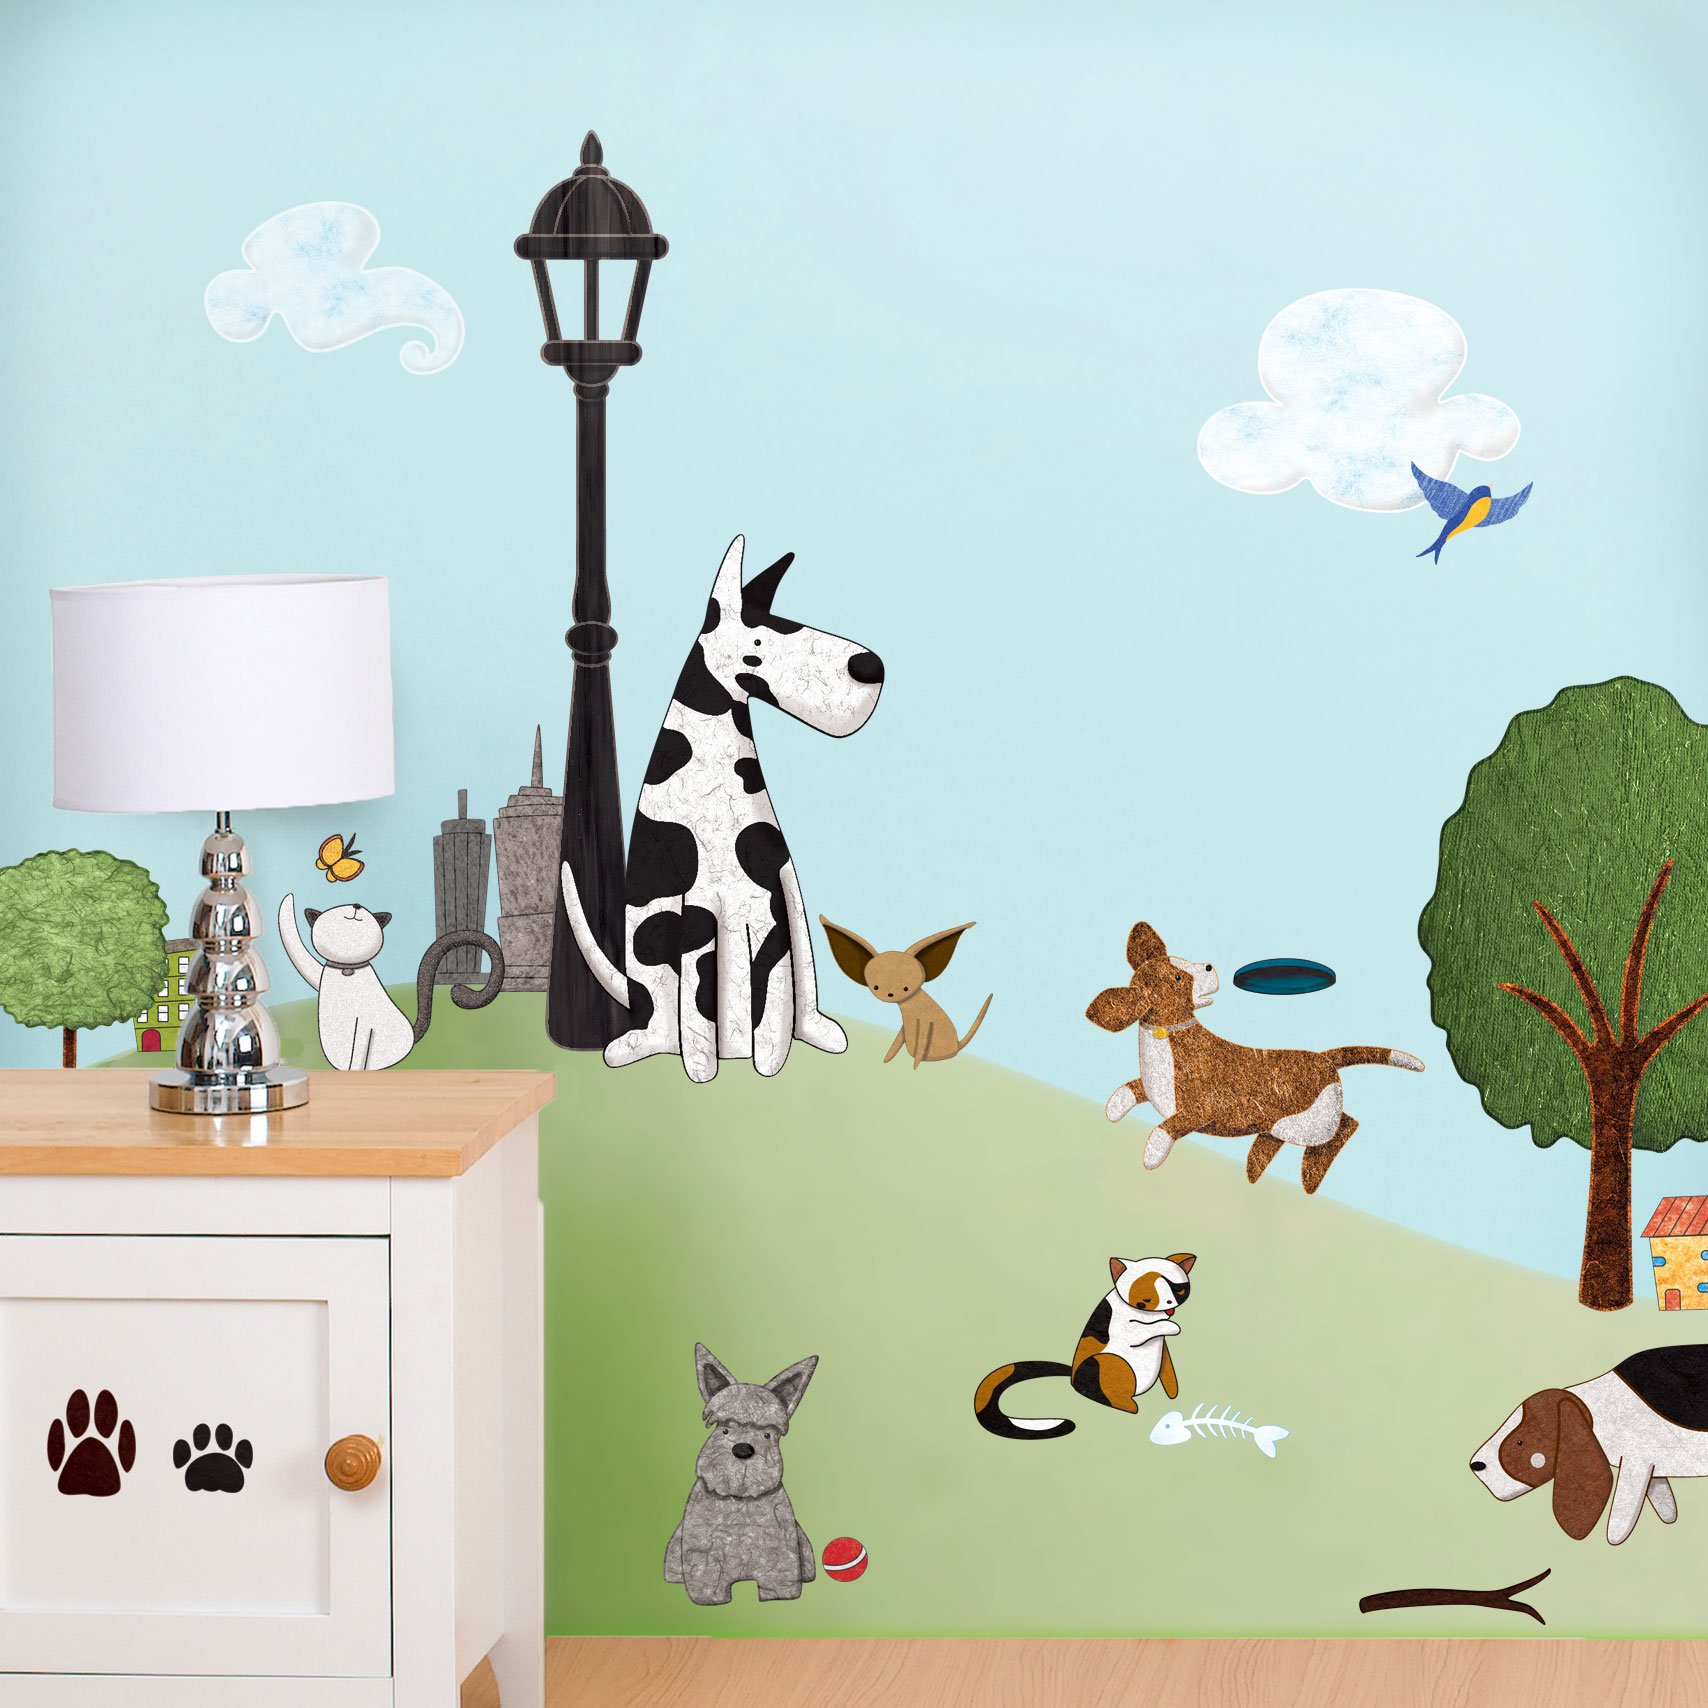 My Wonderful Walls Cat and Dog Decals Stickers for Doggie Spas/Animal Groomers/Kids Room Wall Mural, Multicolored